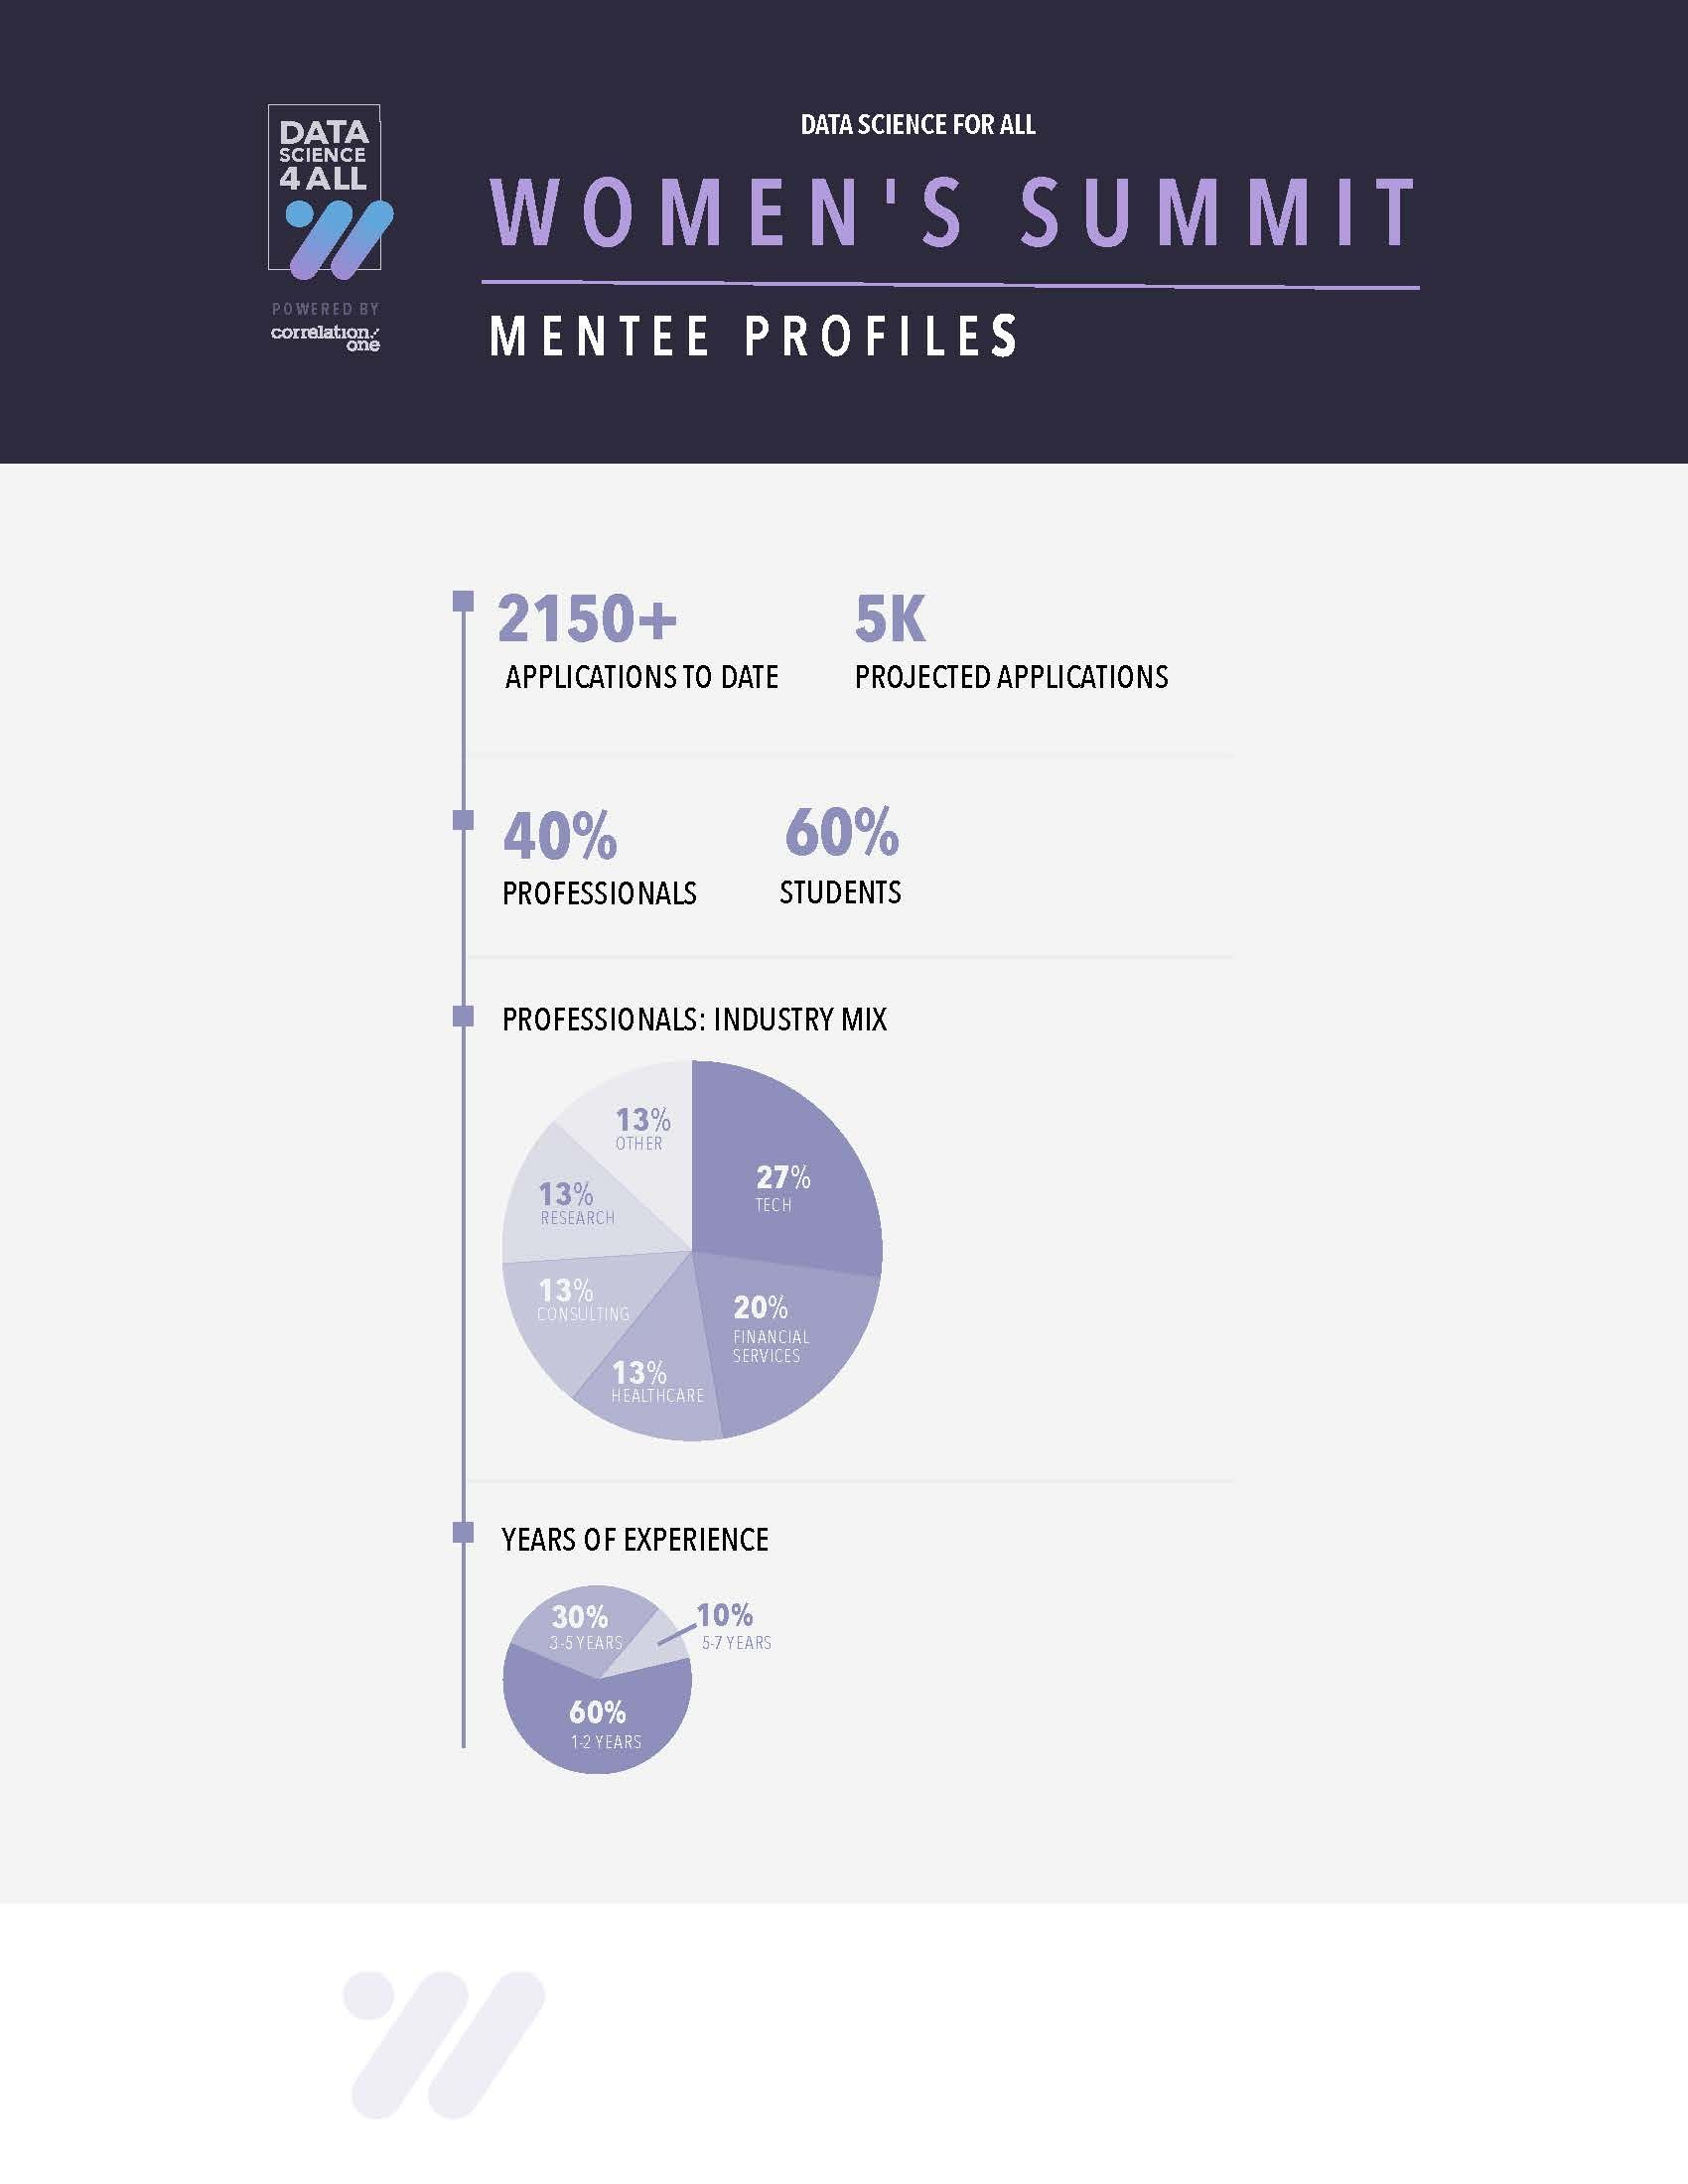 2020 Correlation One Data Science for All: Women's Summit mentee profiles. Women in data science